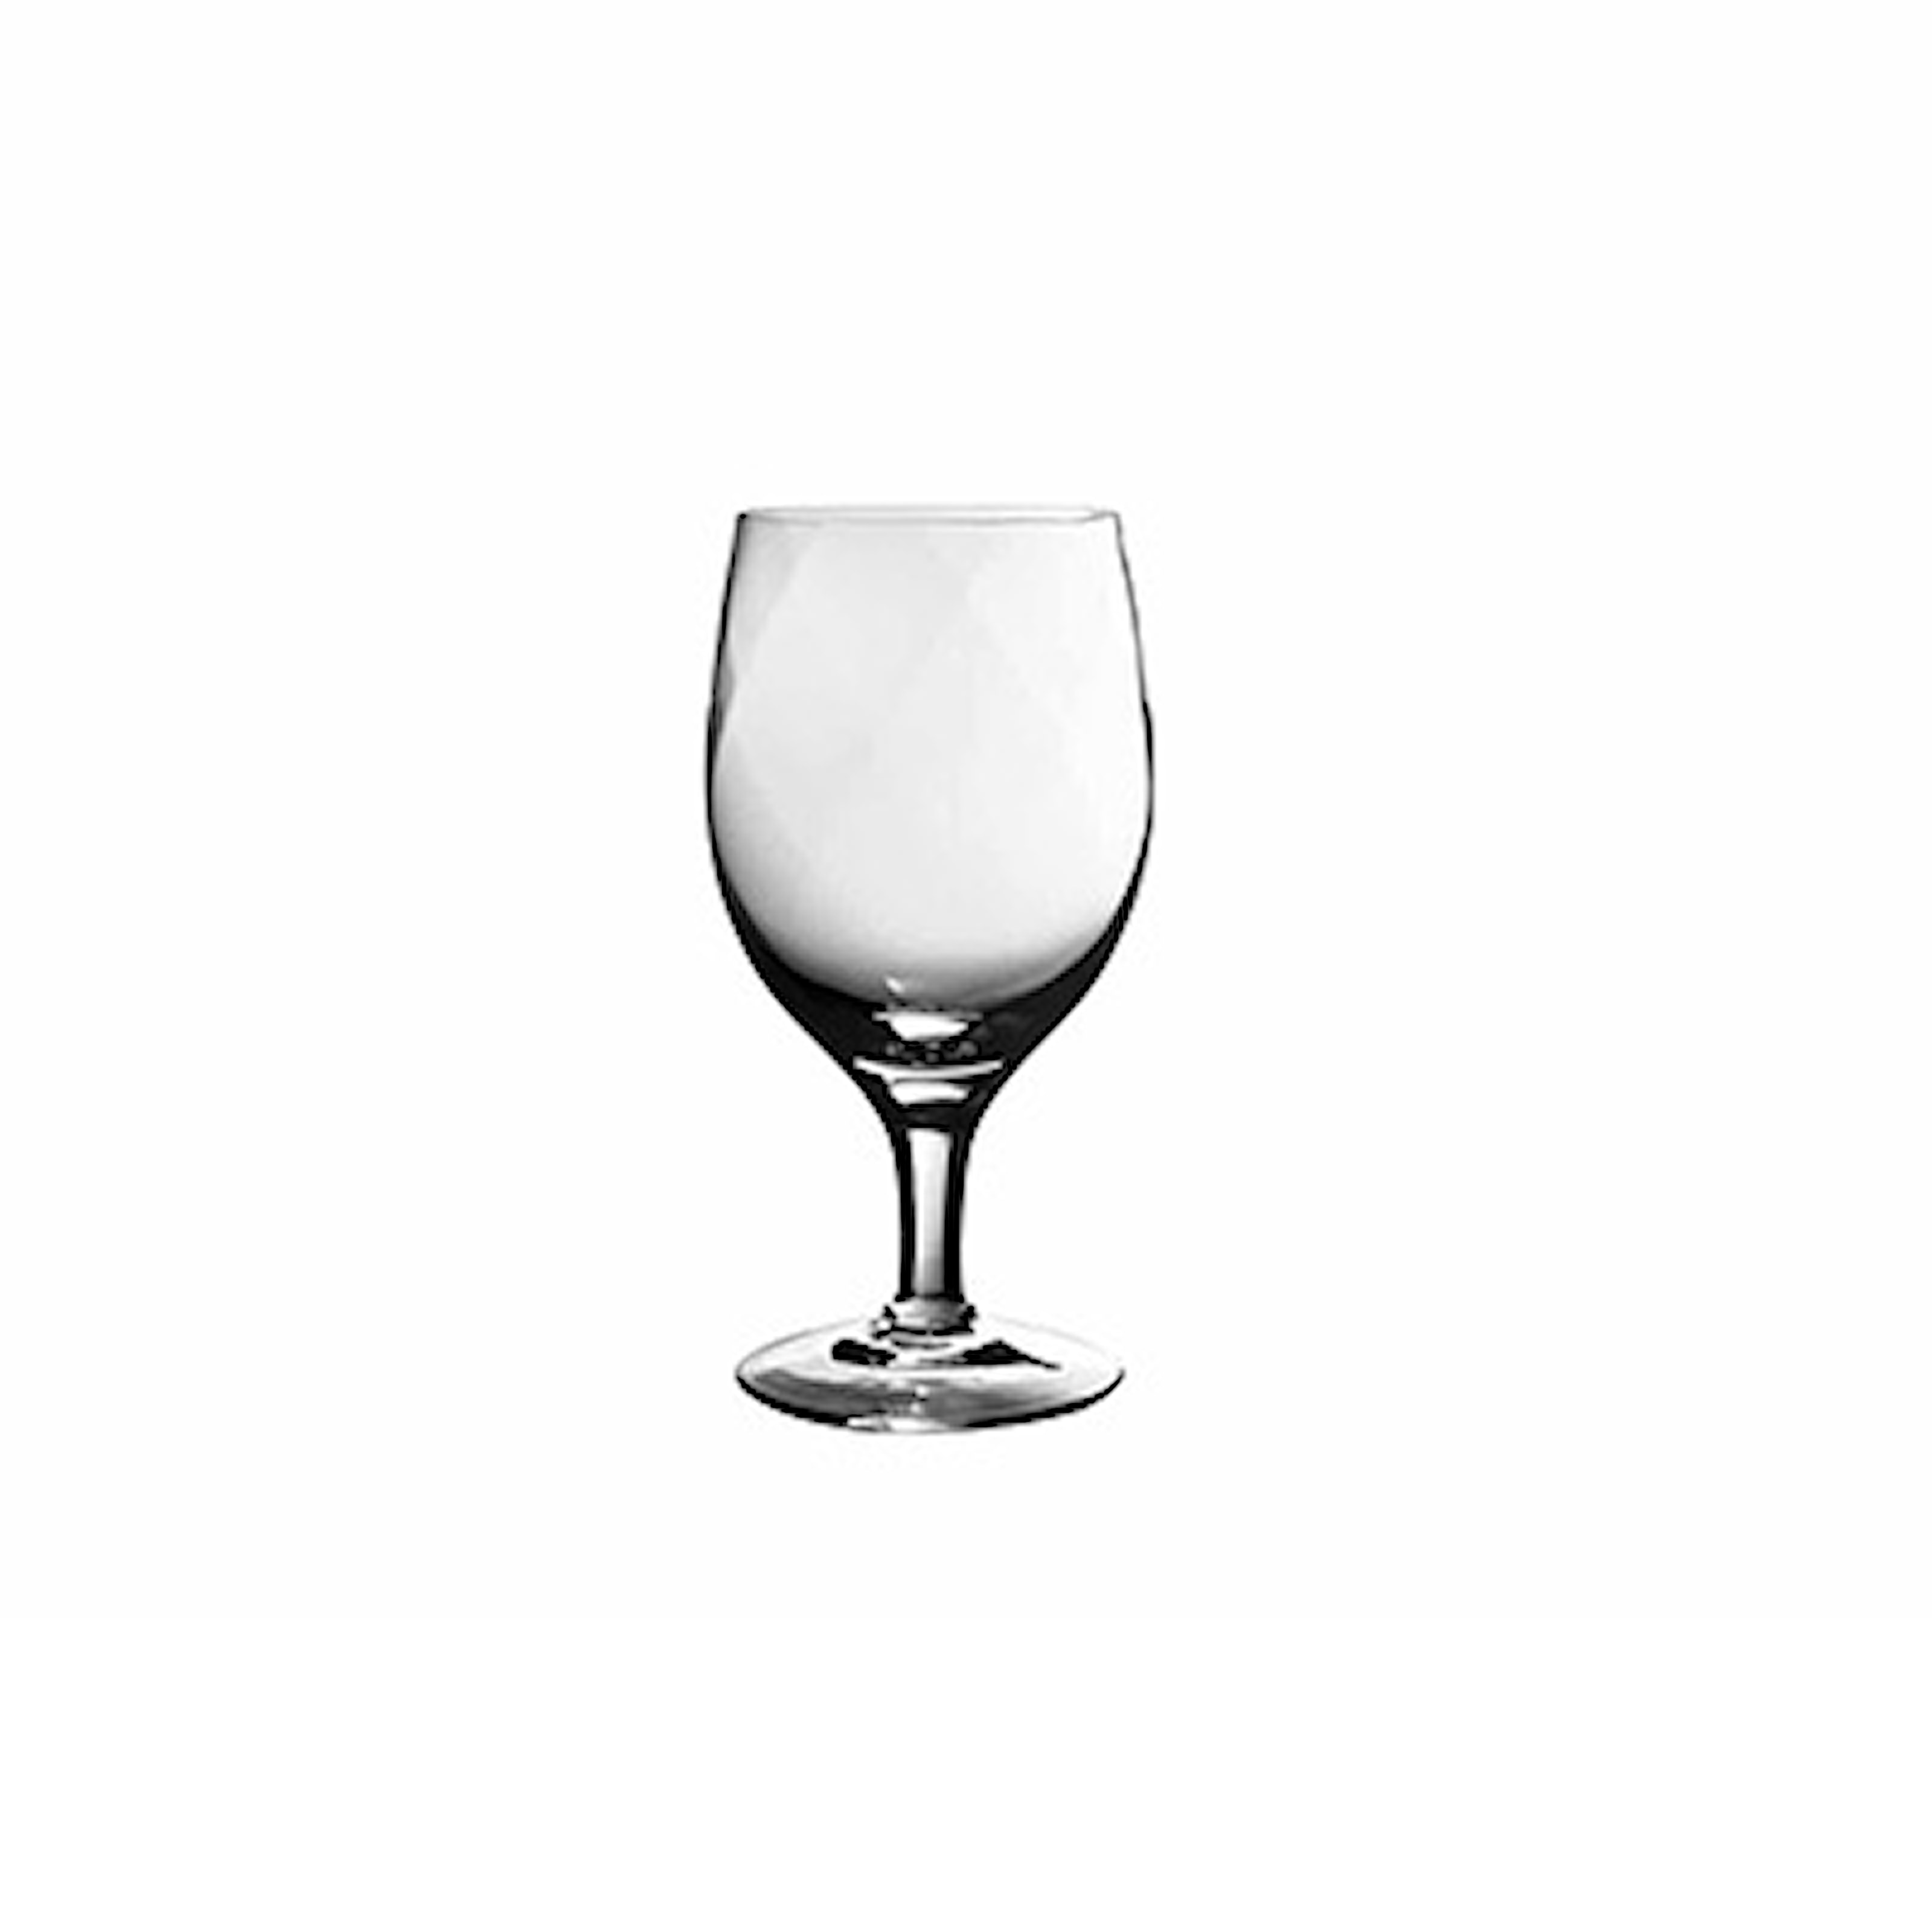 Beer 63cl, Chateau Wine, Champagne or beer glass from Kosta Boda , Chateau från Kosta Boda, ,